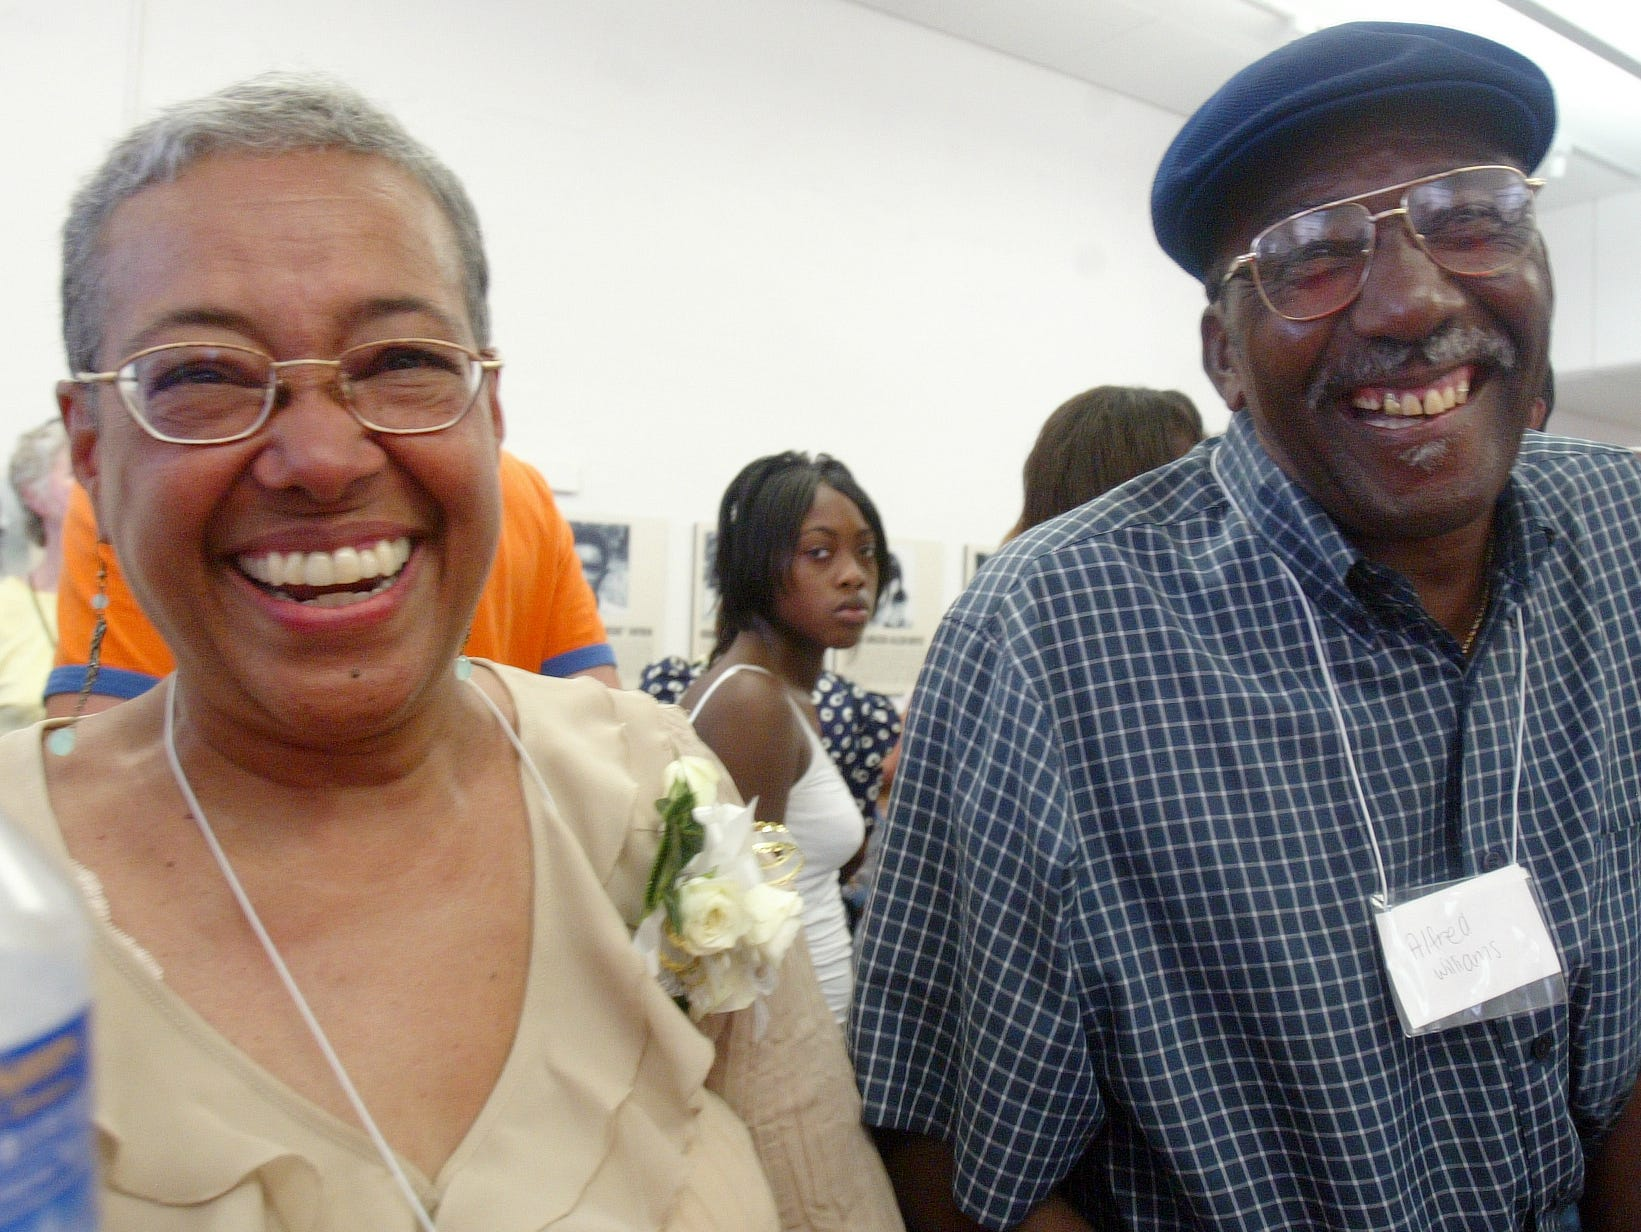 Jo Ann Allen Boyce, left, and Alfred Williams, both members of the Clinton 12,  a name given to the first black students to integrate Clinton High School in 1956, share a laugh after a ceremony held in their honor on Saturday in Clinton. Ten of the twelve members attended the weekend festivities. 08/26/06